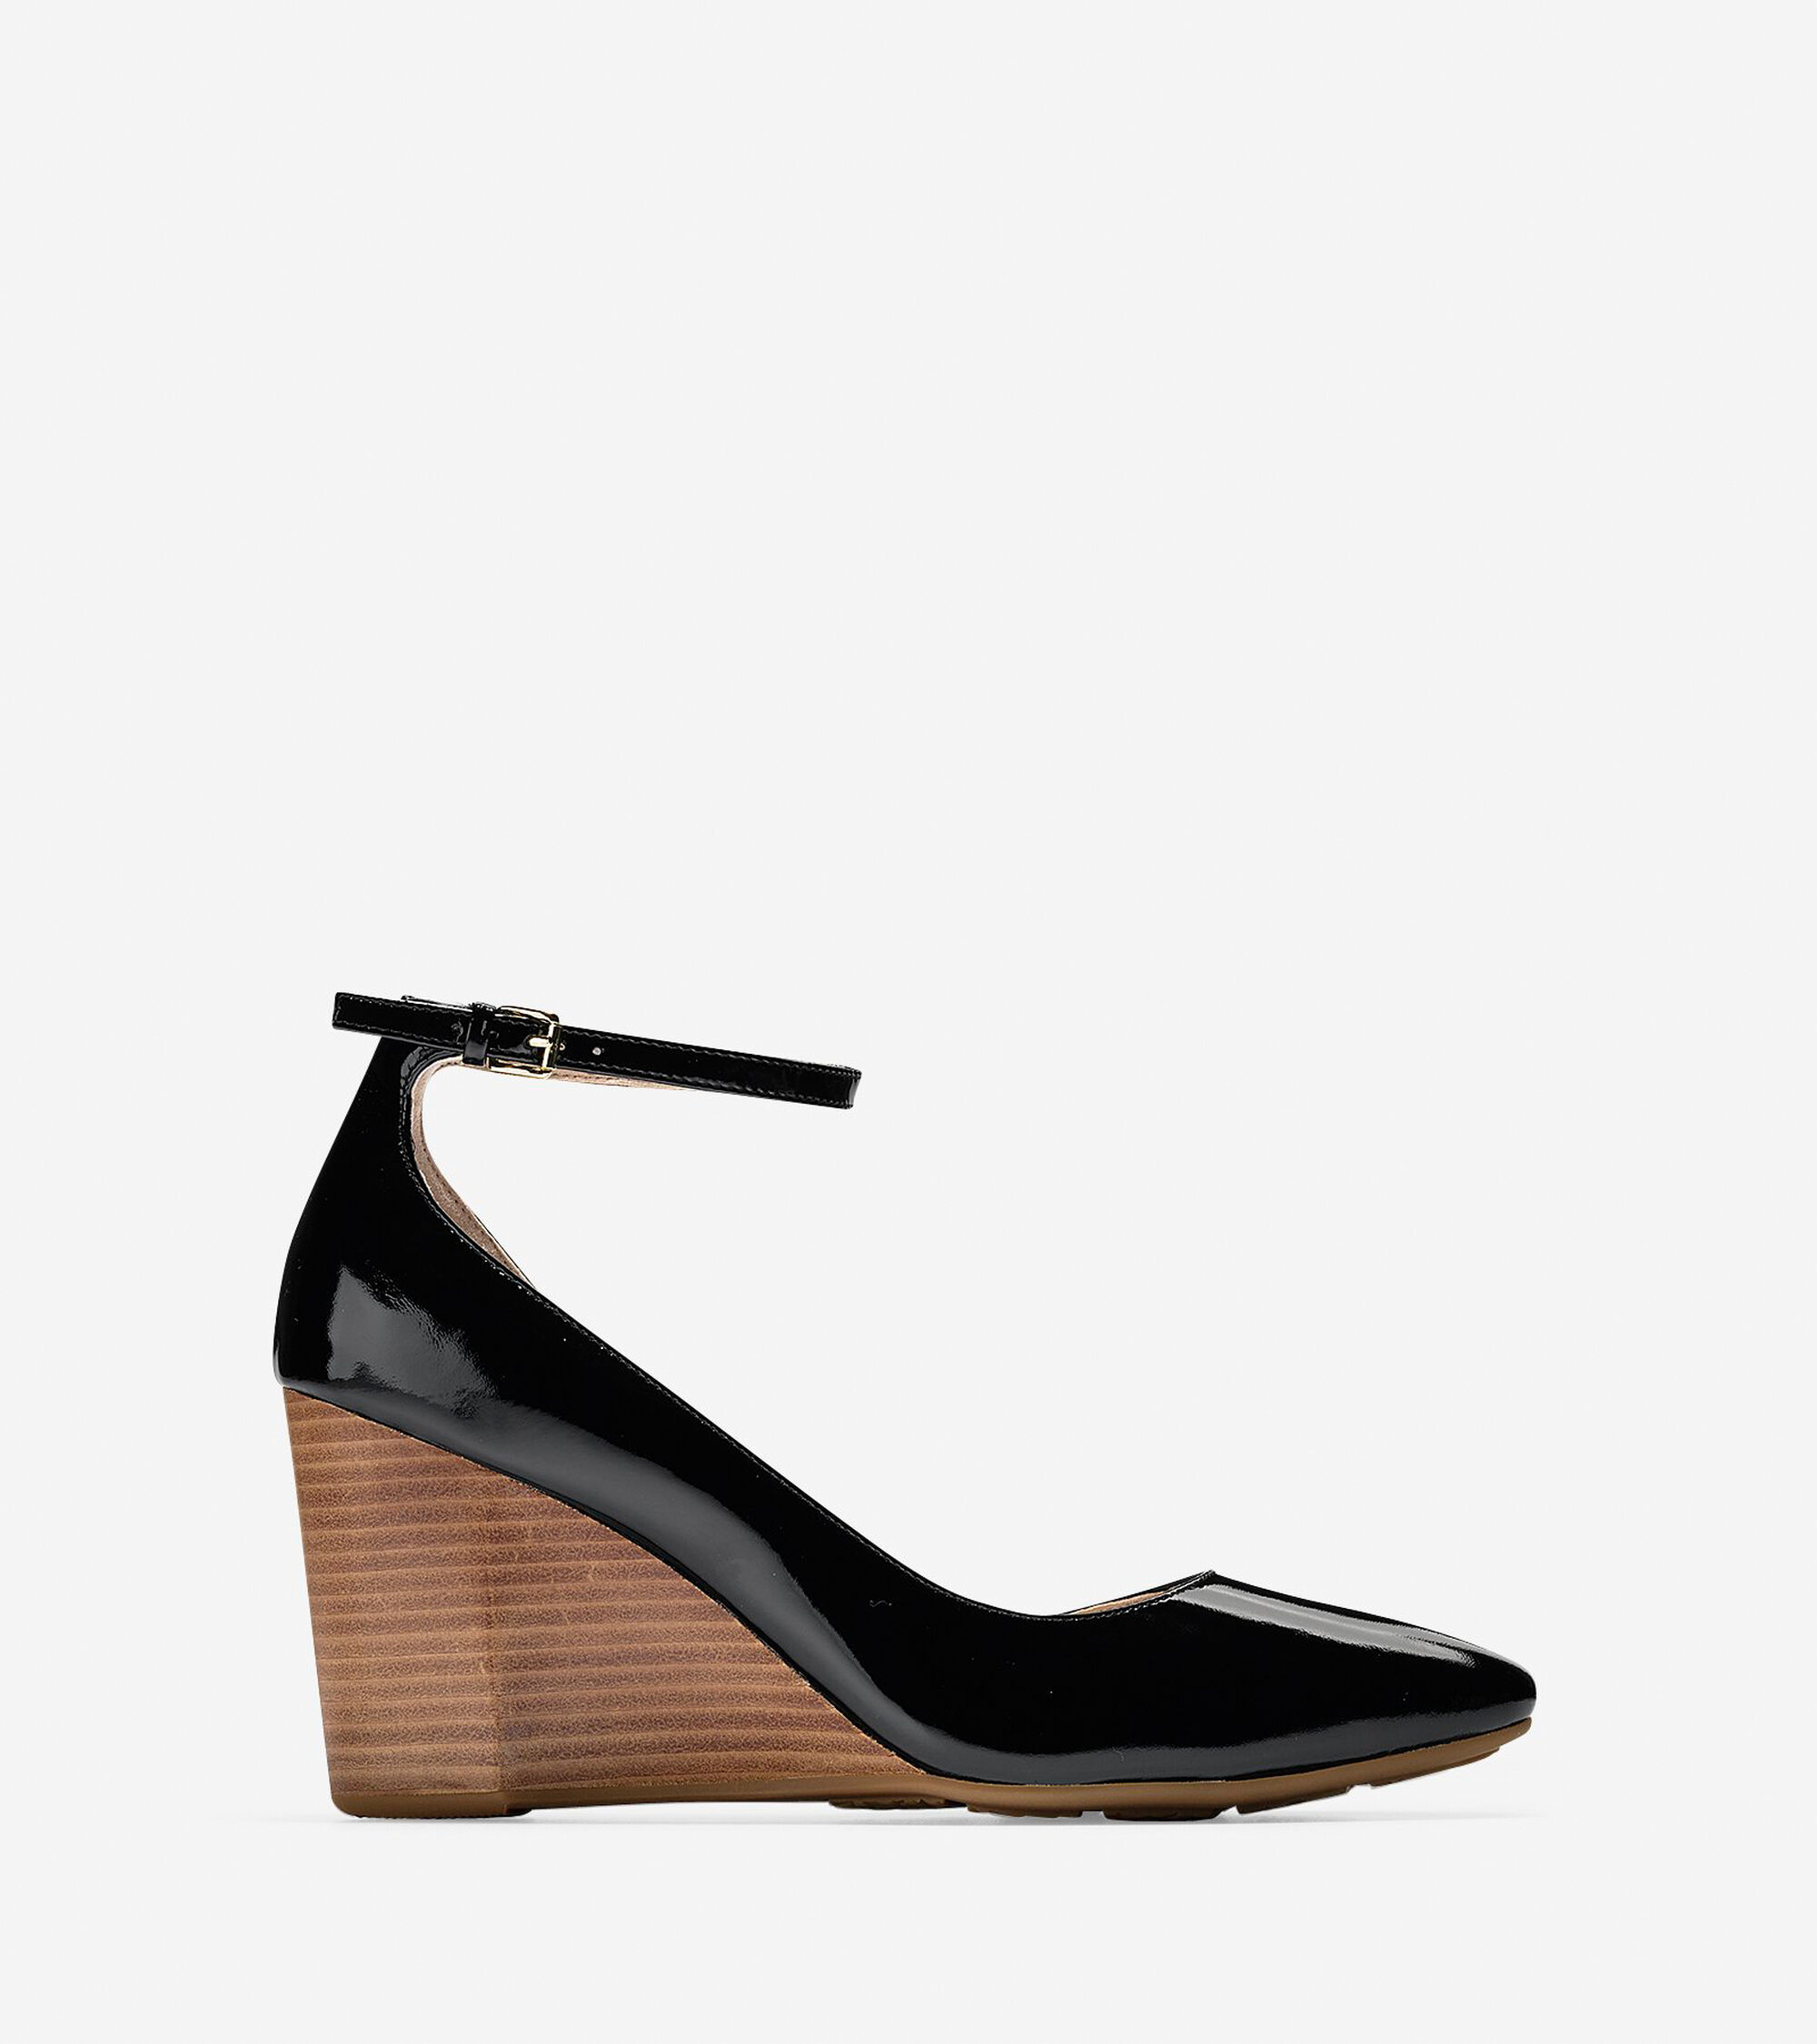 95bb2c4a1d Lacey Ankle Strap Wedges 85mm in Black Patent | Cole Haan